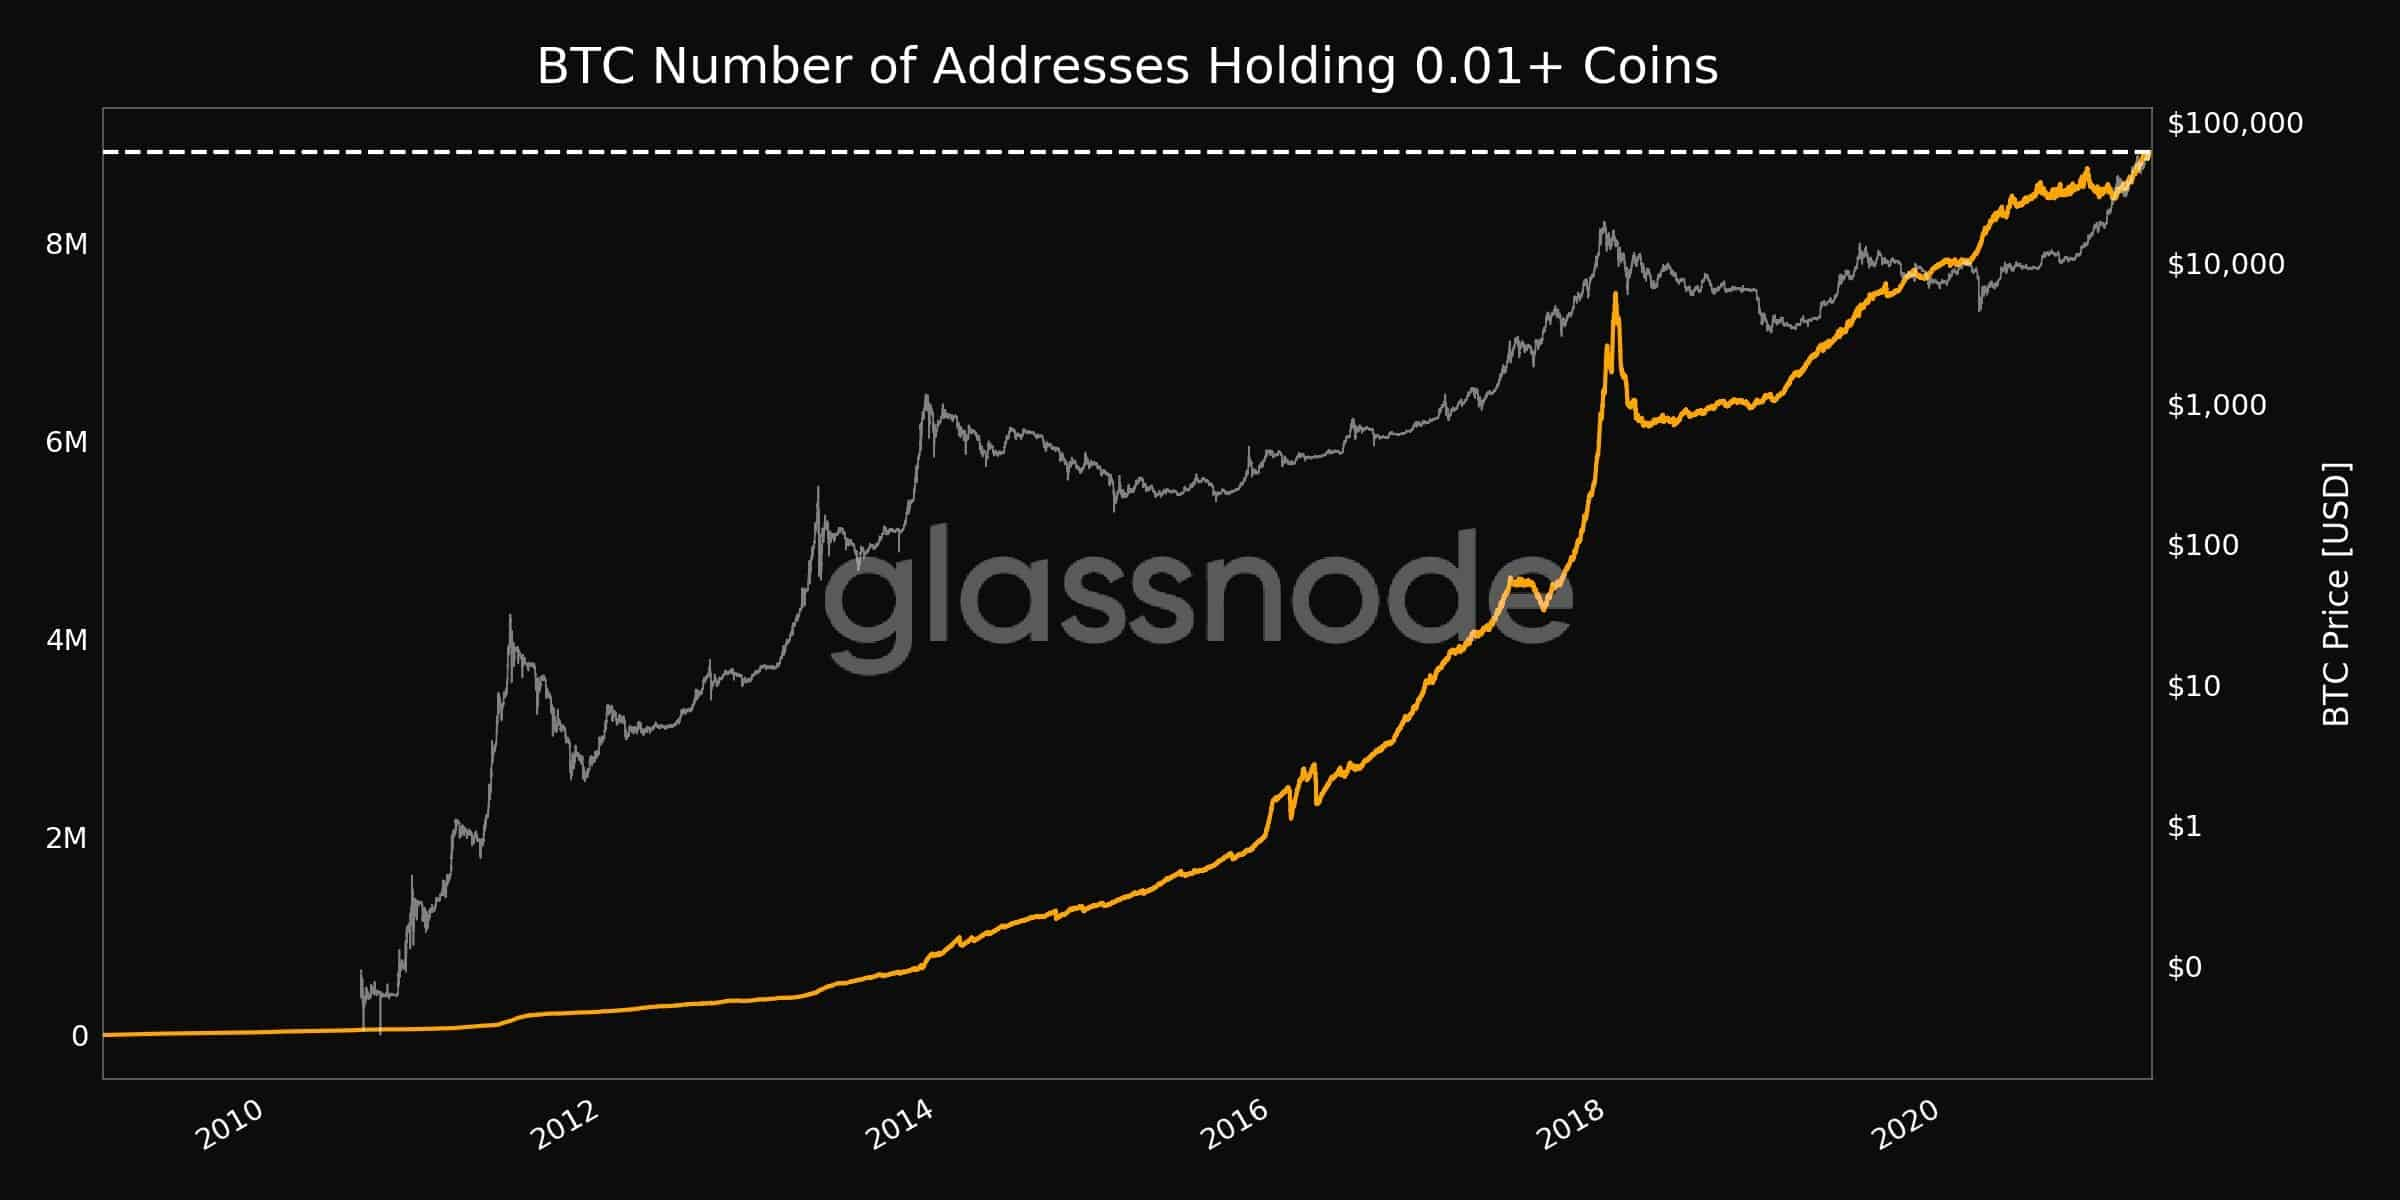 Bitcoin Addresses with 0.01+ Coins. Source: Glassnode